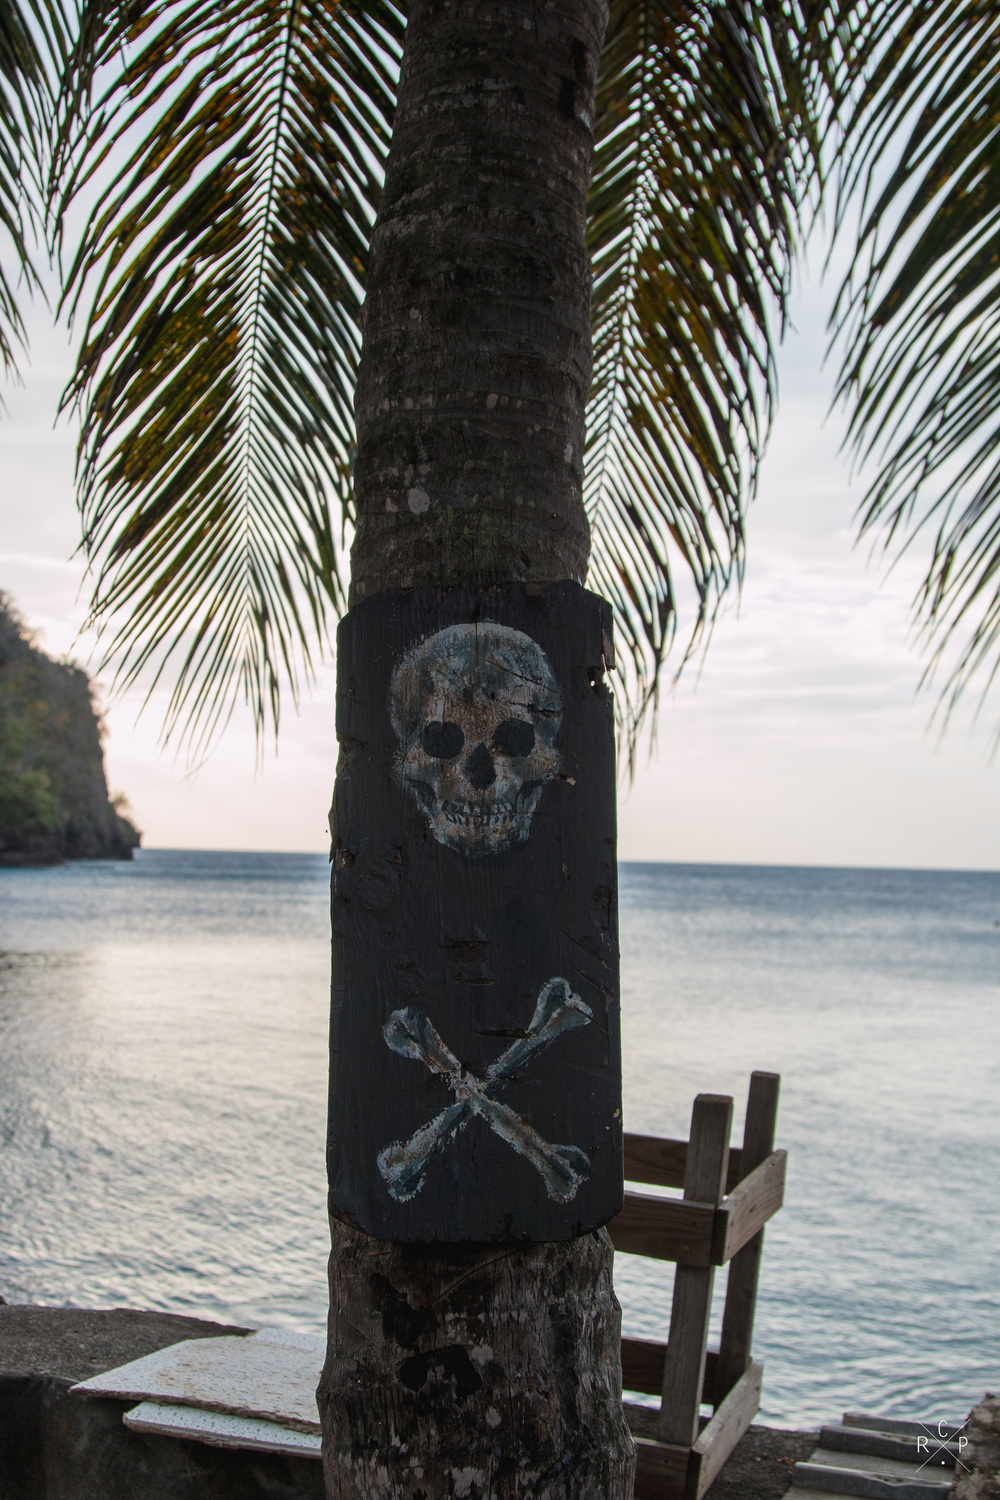 Pirate Sign - Wallilabou Bay, St. Vincent & The Grenadines 05/02/2016